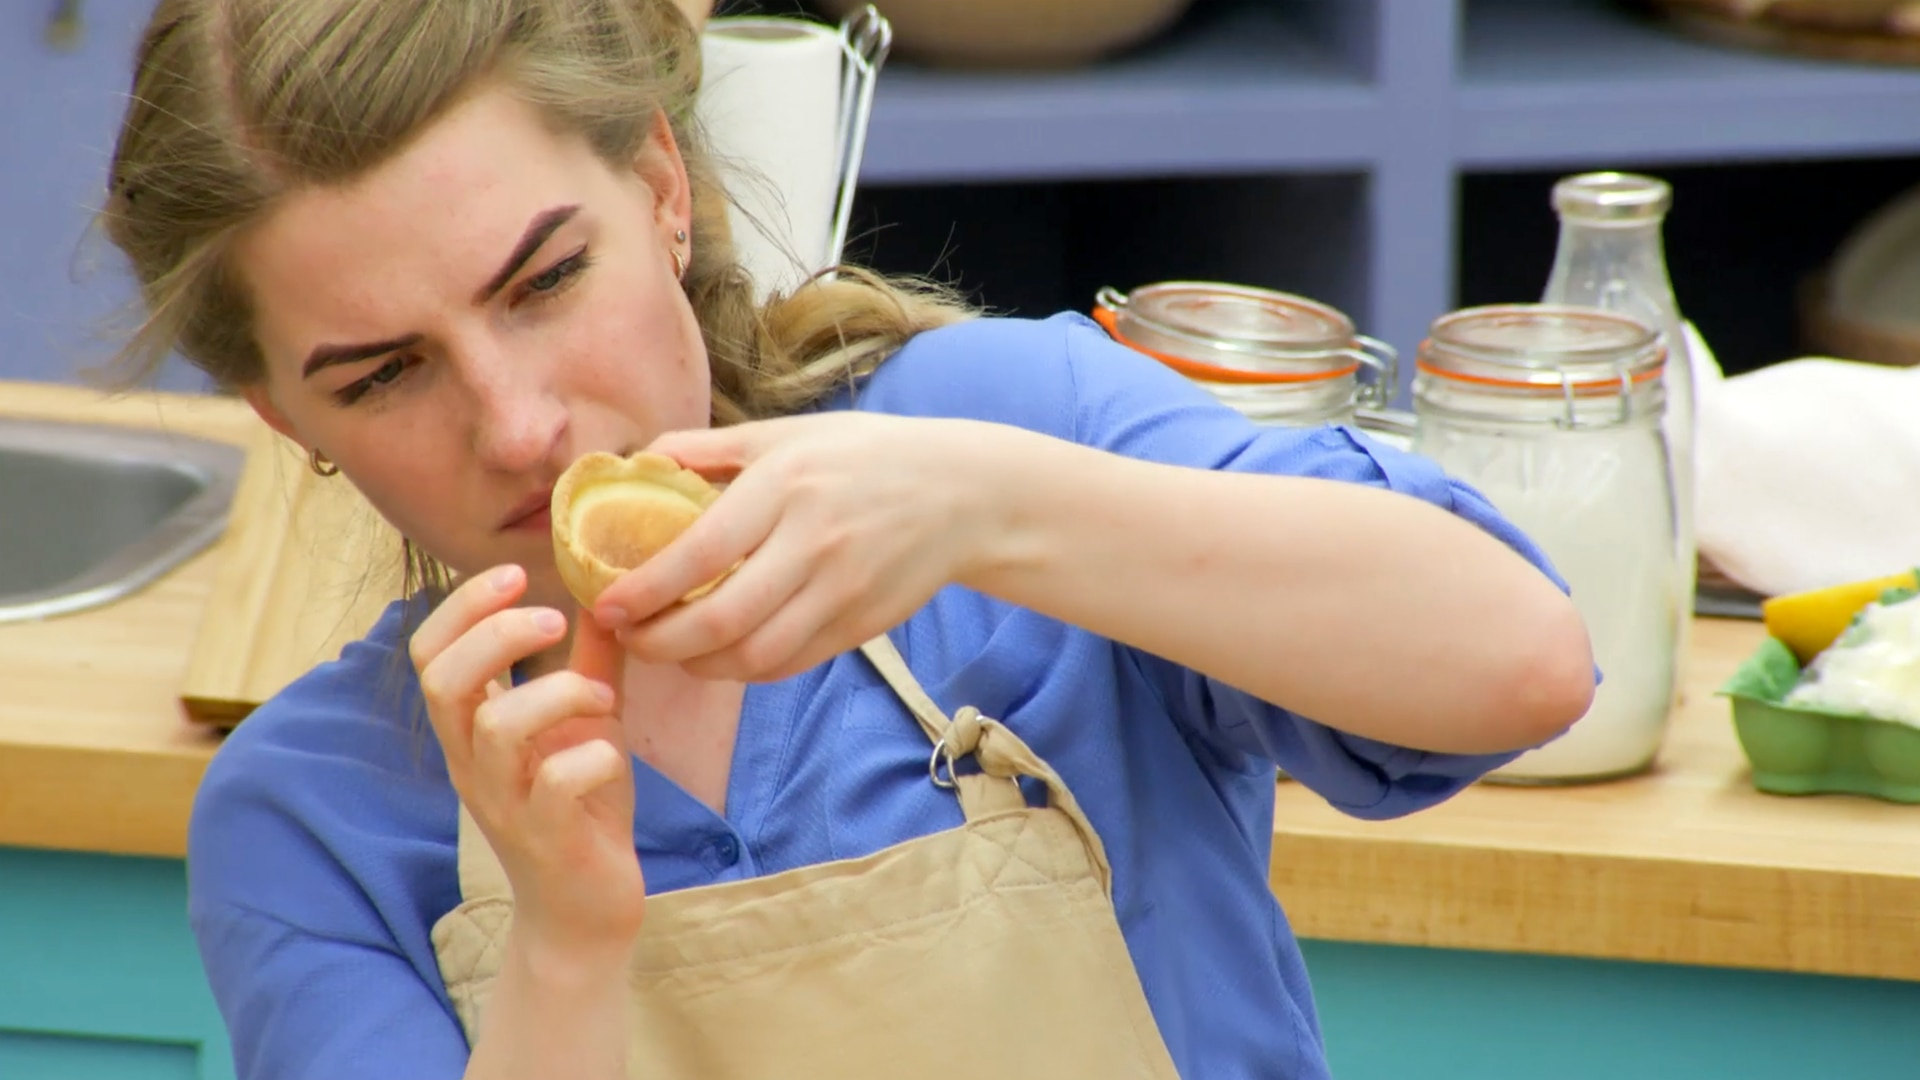 The Great British Bake Off - Episode 7